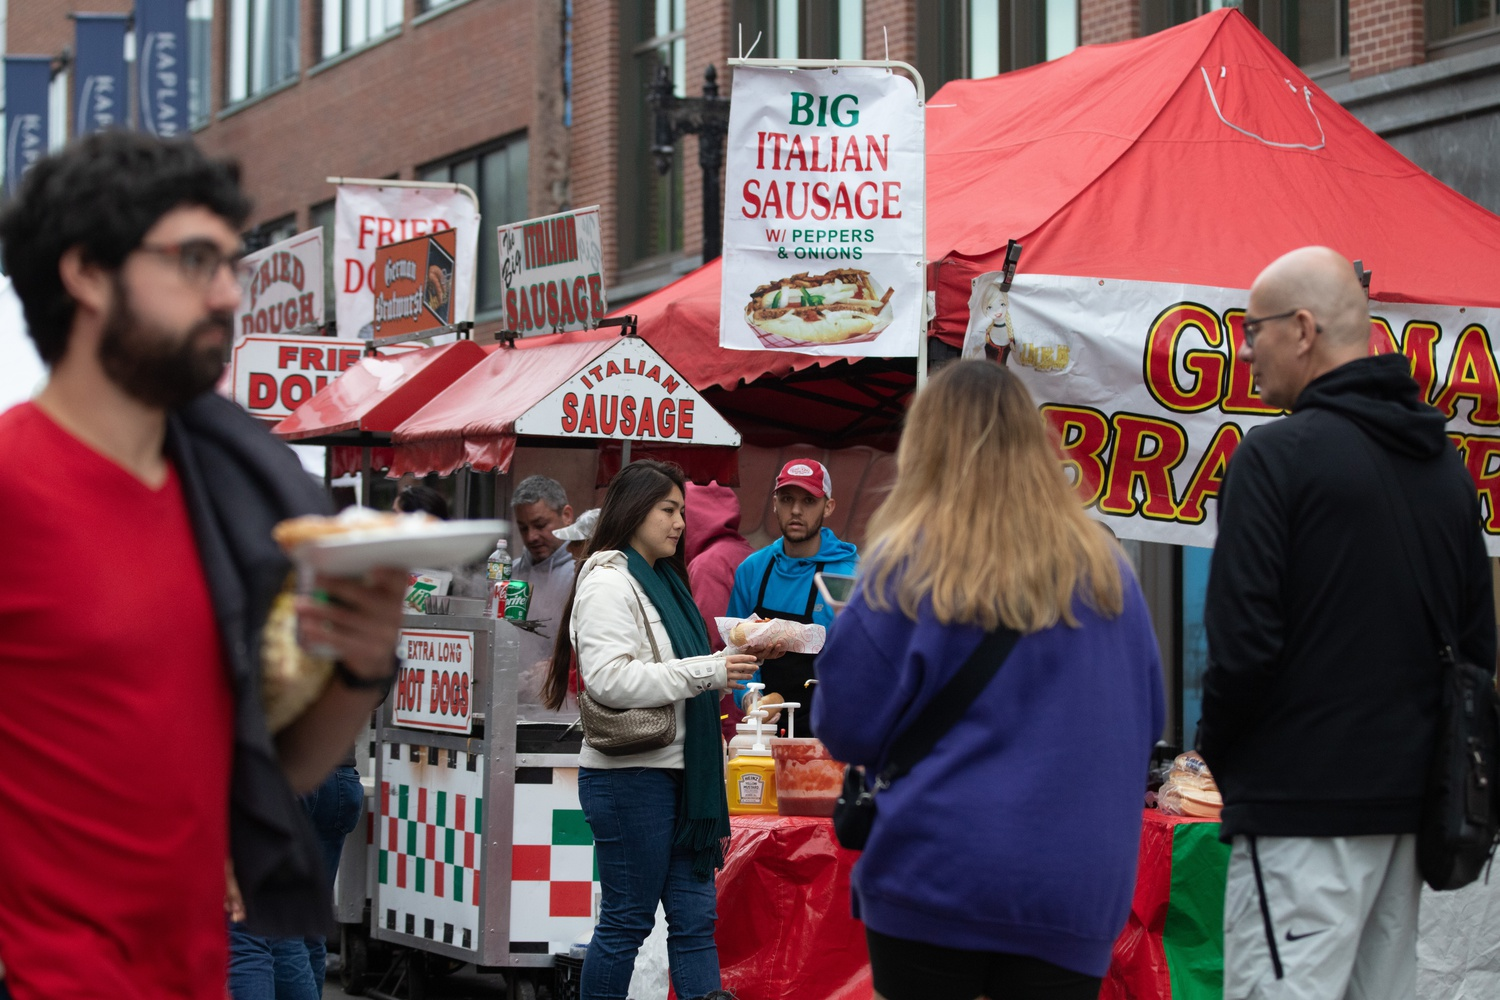 Live performances, arts and crafts, and street food spilled into Harvard Square Sunday as the Harvard Square Business Association hosted its 42nd Annual Oktoberfest.